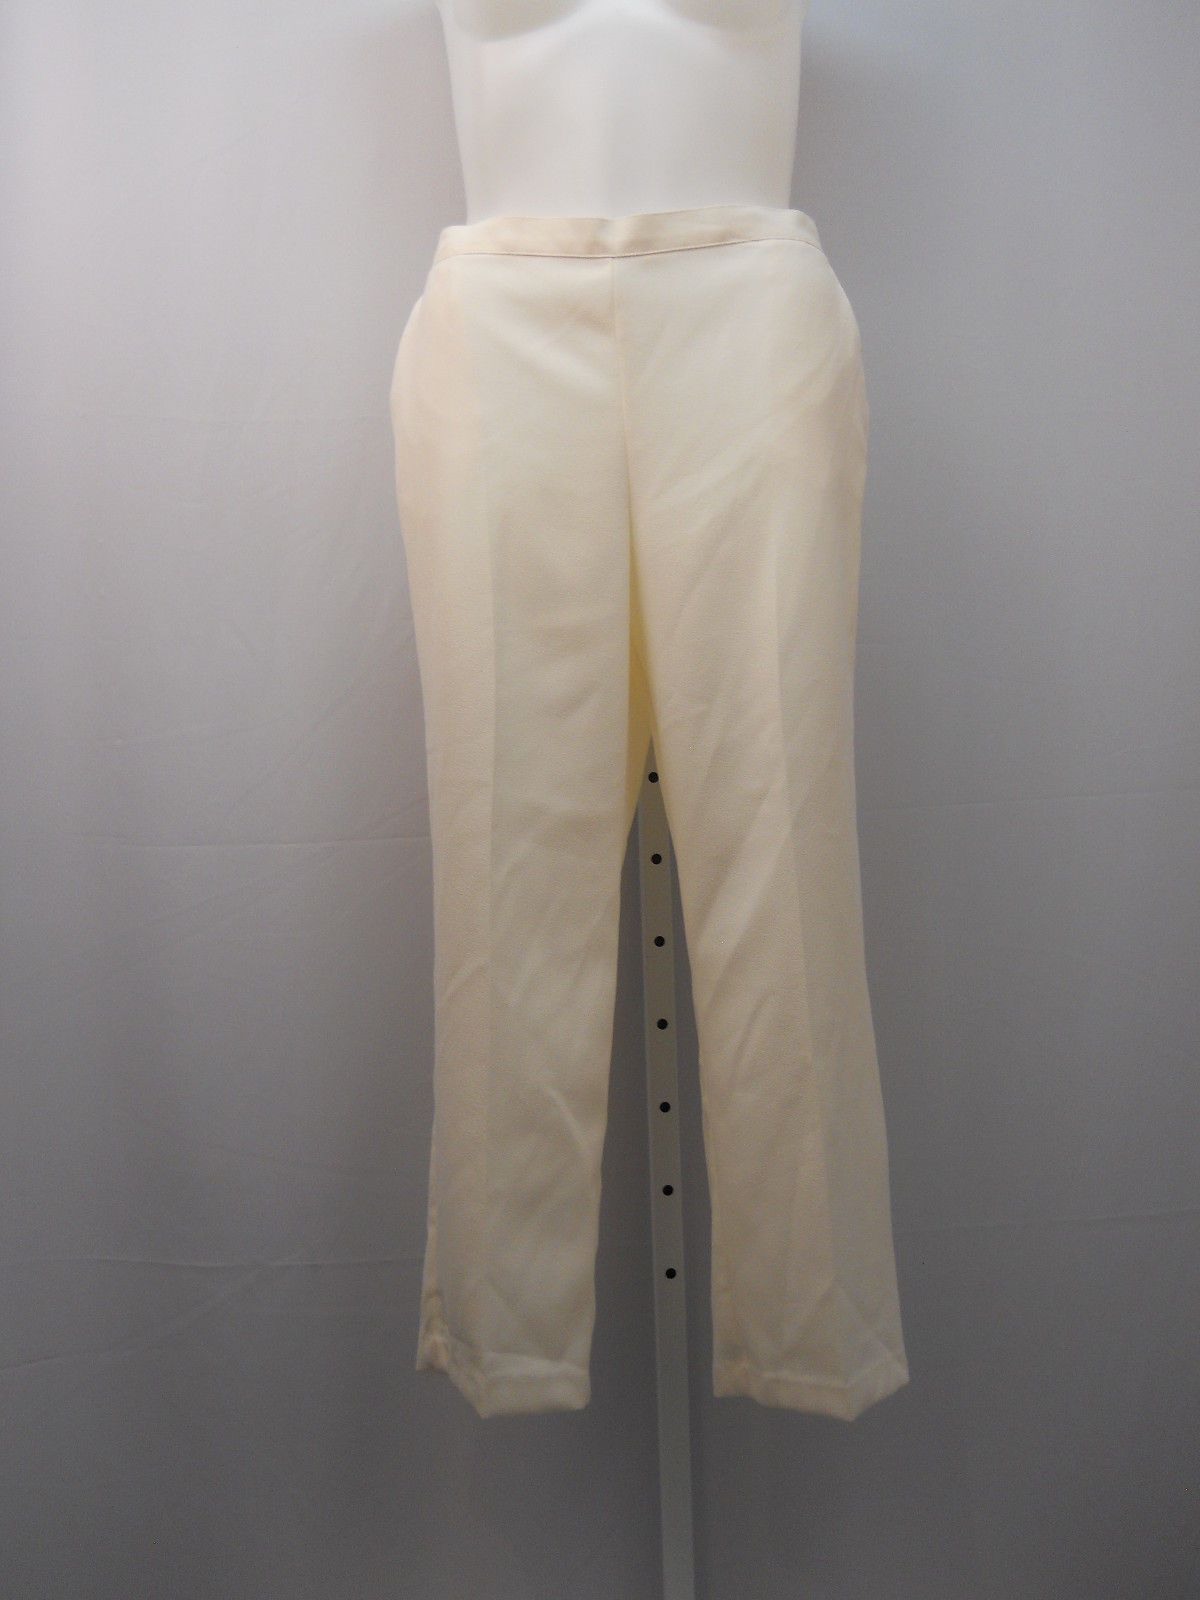 Find great deals on eBay for size 18 petite pants. Shop with confidence.